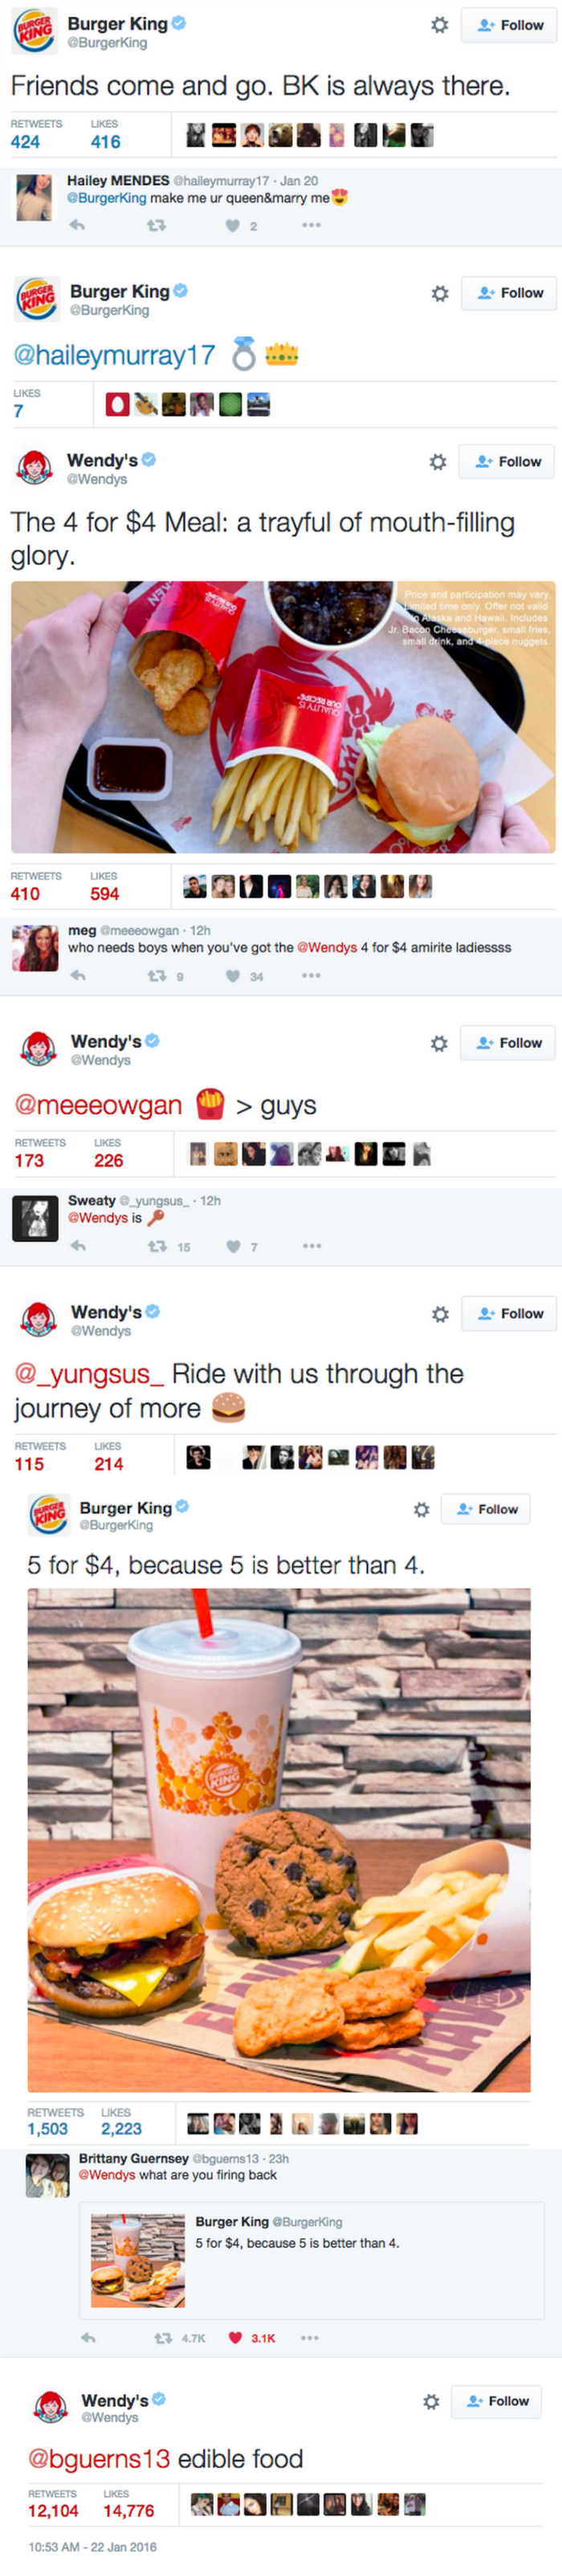 funny twitter fight Burger King and Wendys get heated on social media